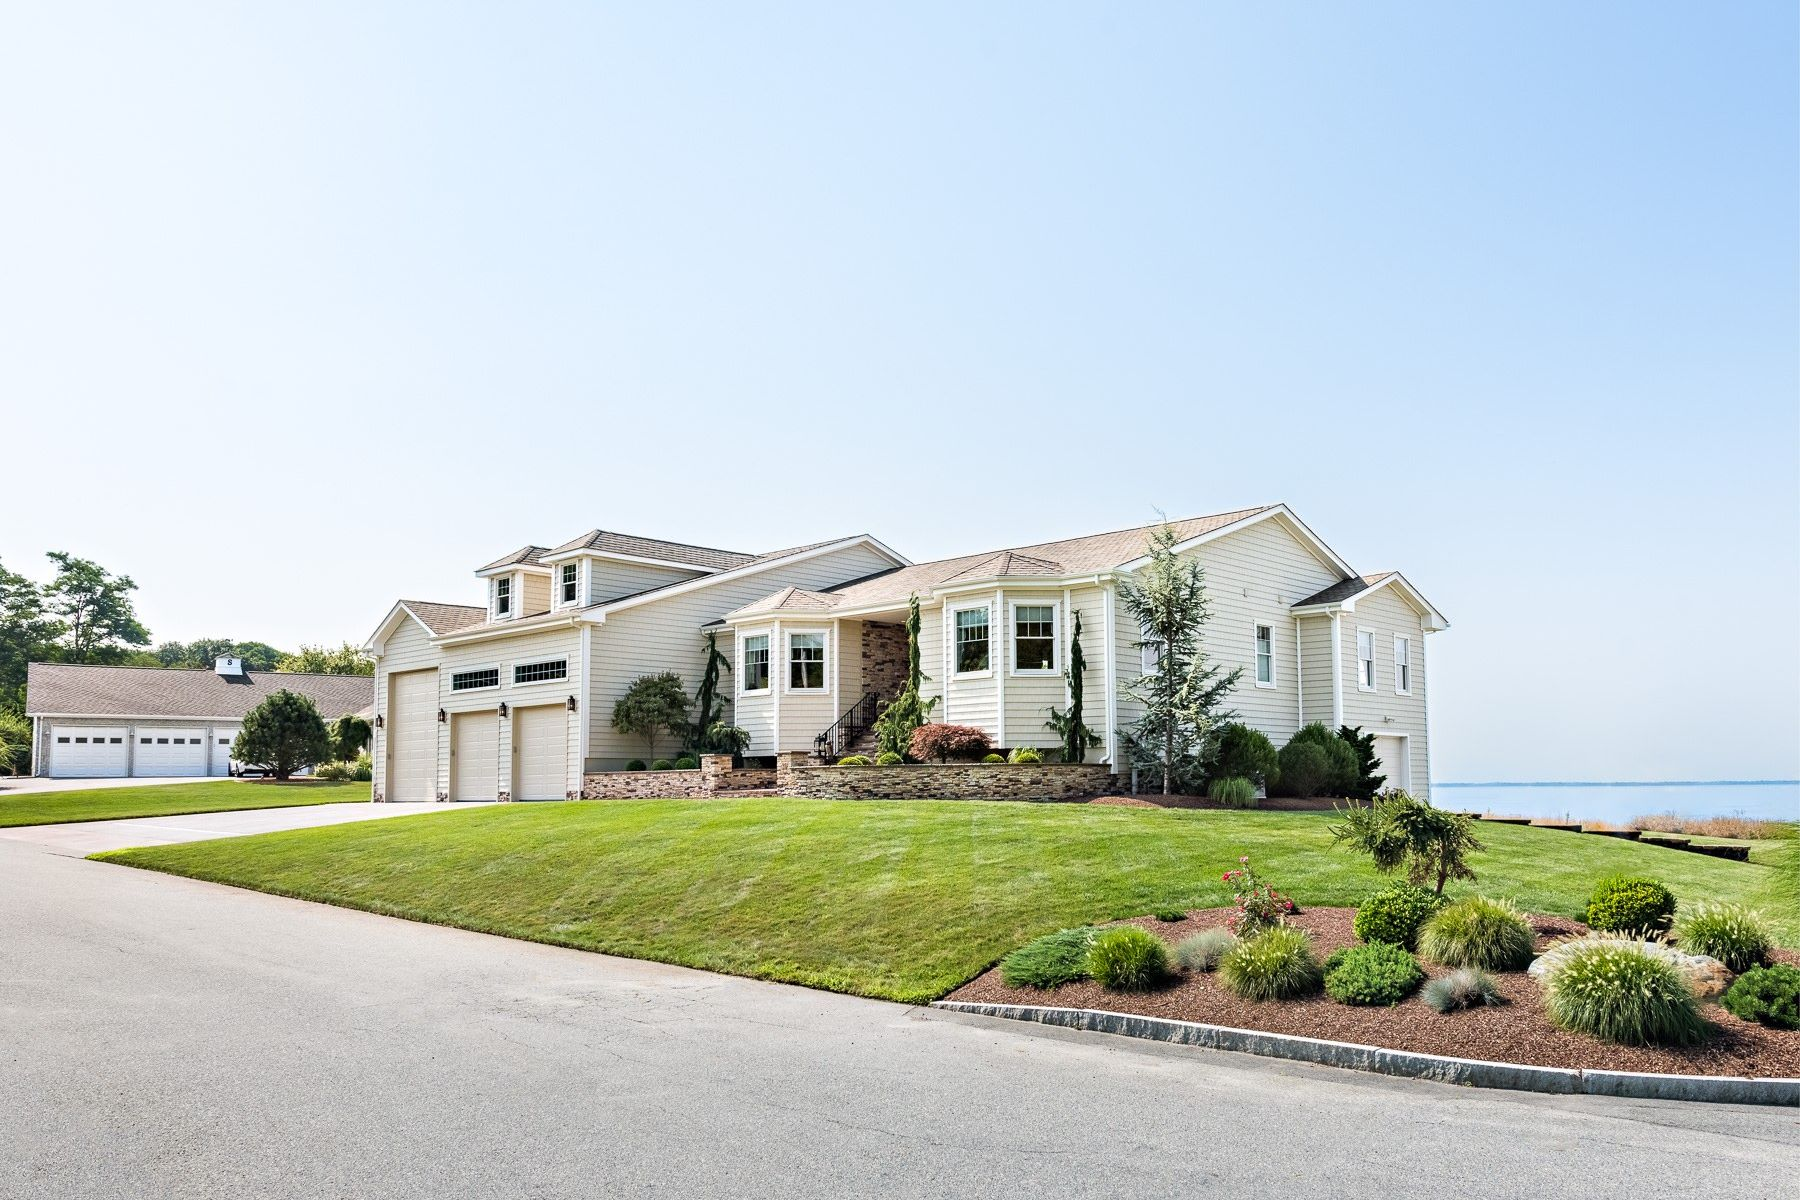 Single Family Homes for Sale at Beautiful Barrington Beachfront 1 Fessenden Road Barrington, Rhode Island 02806 United States